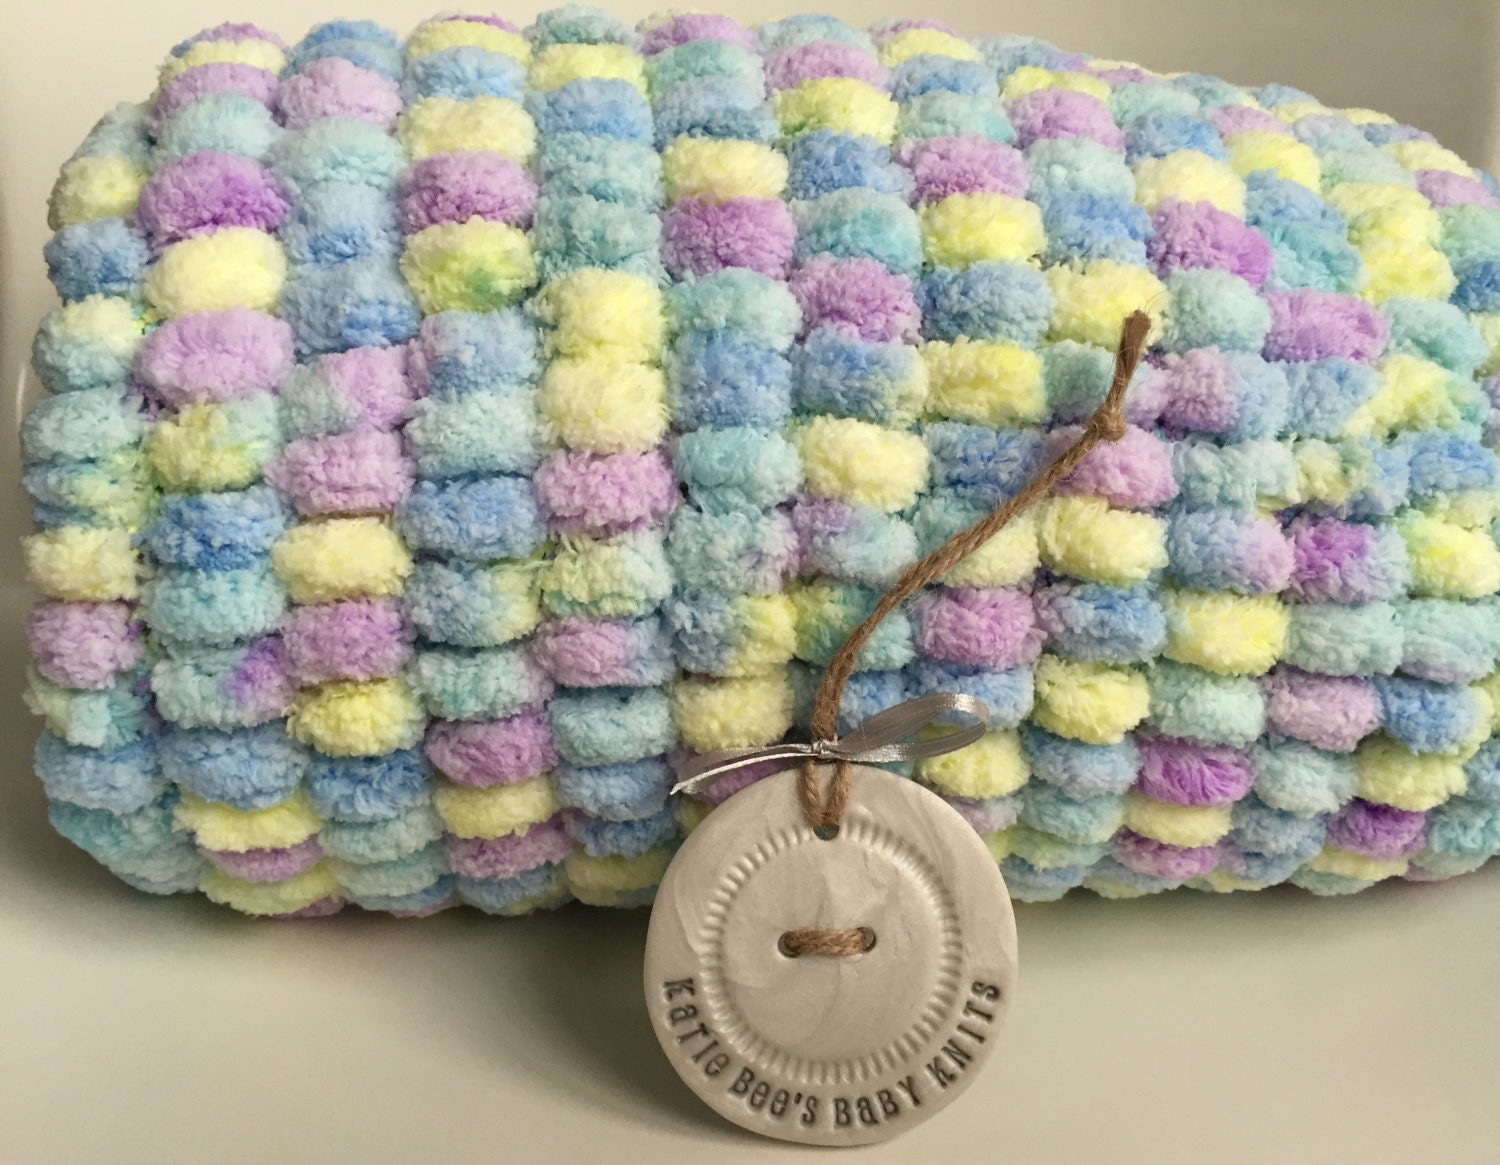 Knitting Pattern For Pom Pom Blanket : Pom pom baby blanket Hand knitted Blue Yellow Purple